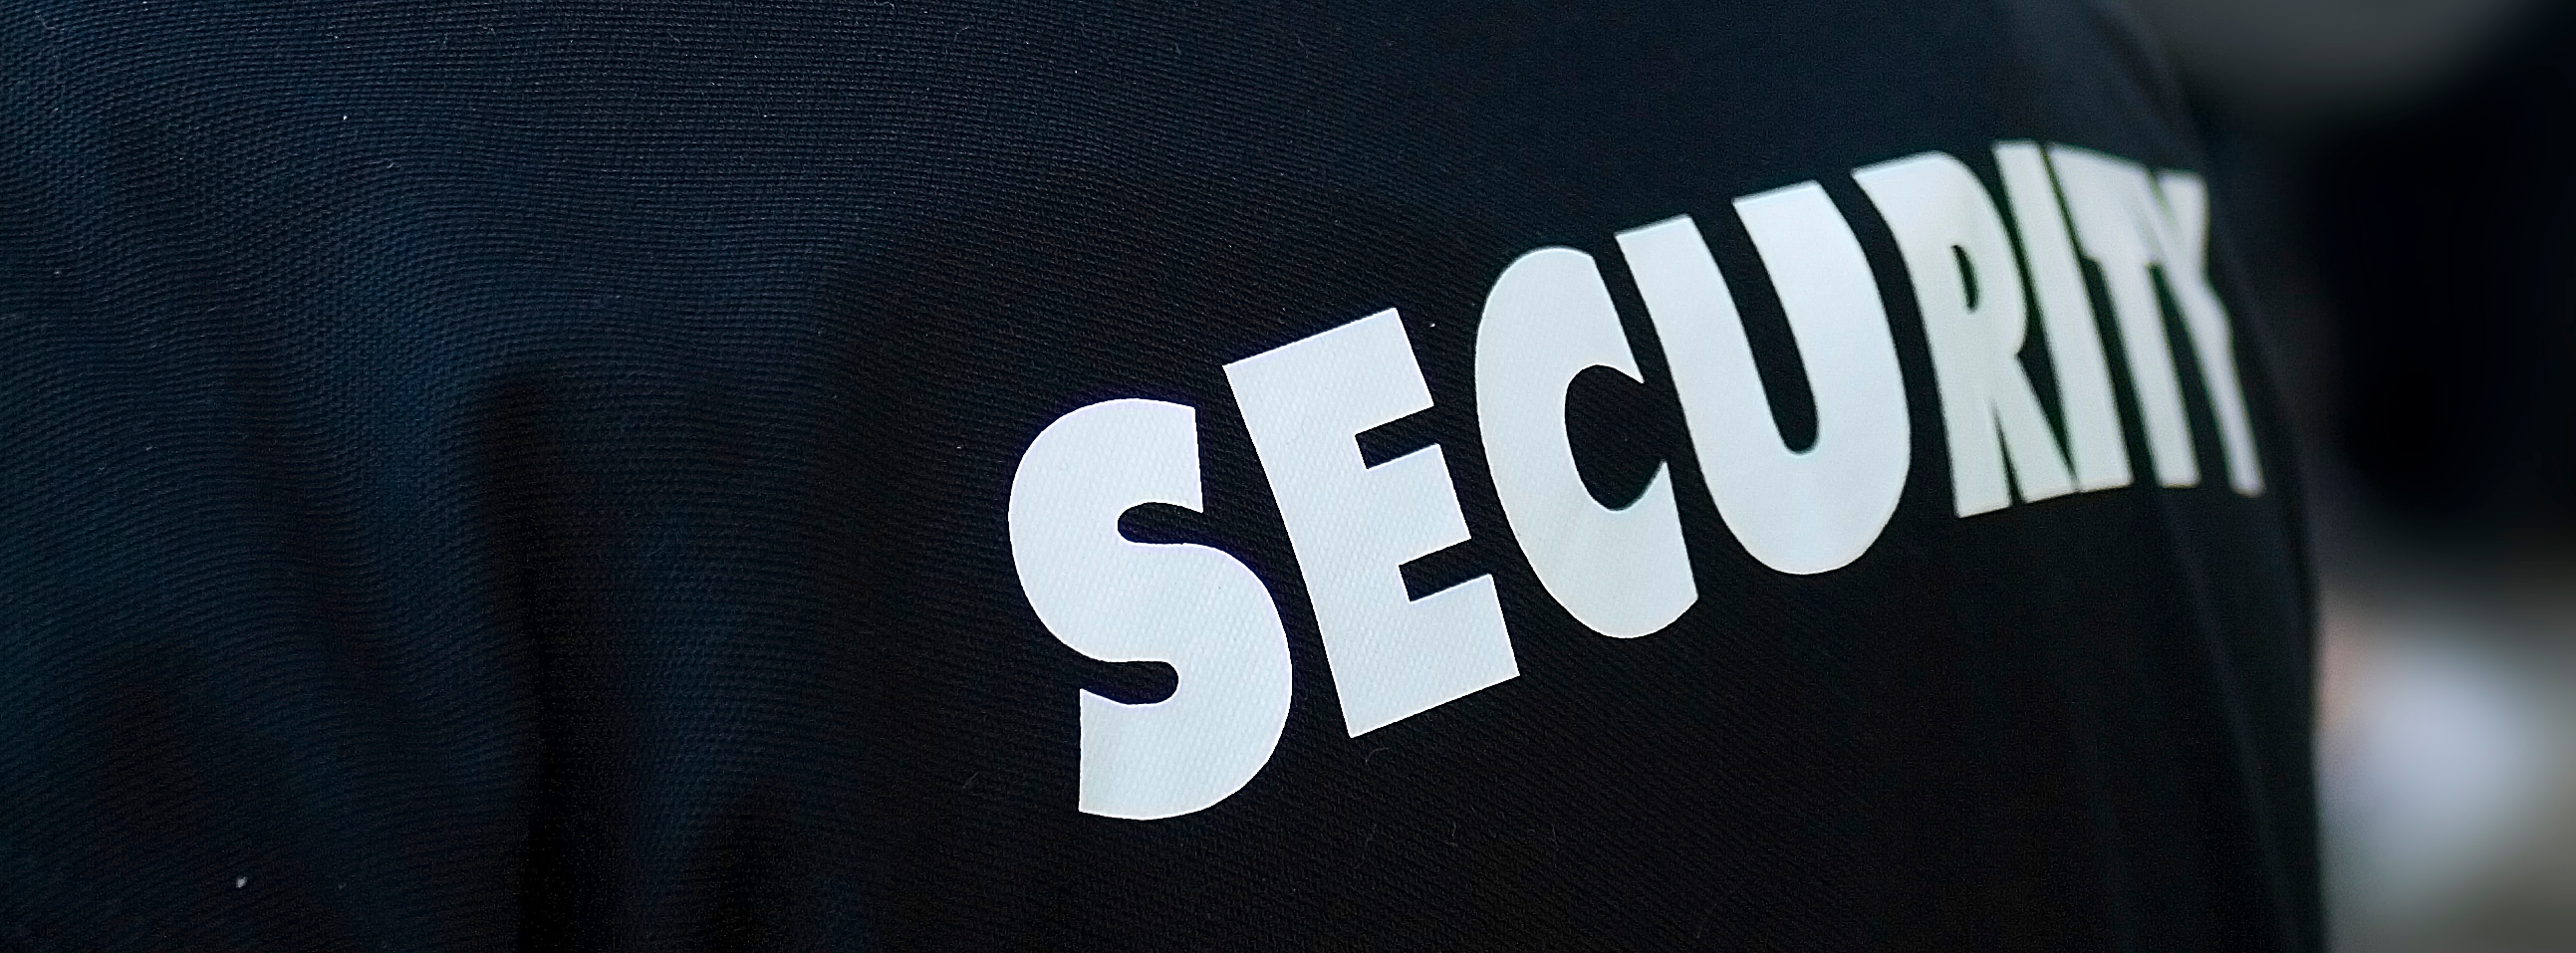 How to become a Maryland licensed security guard | Trust